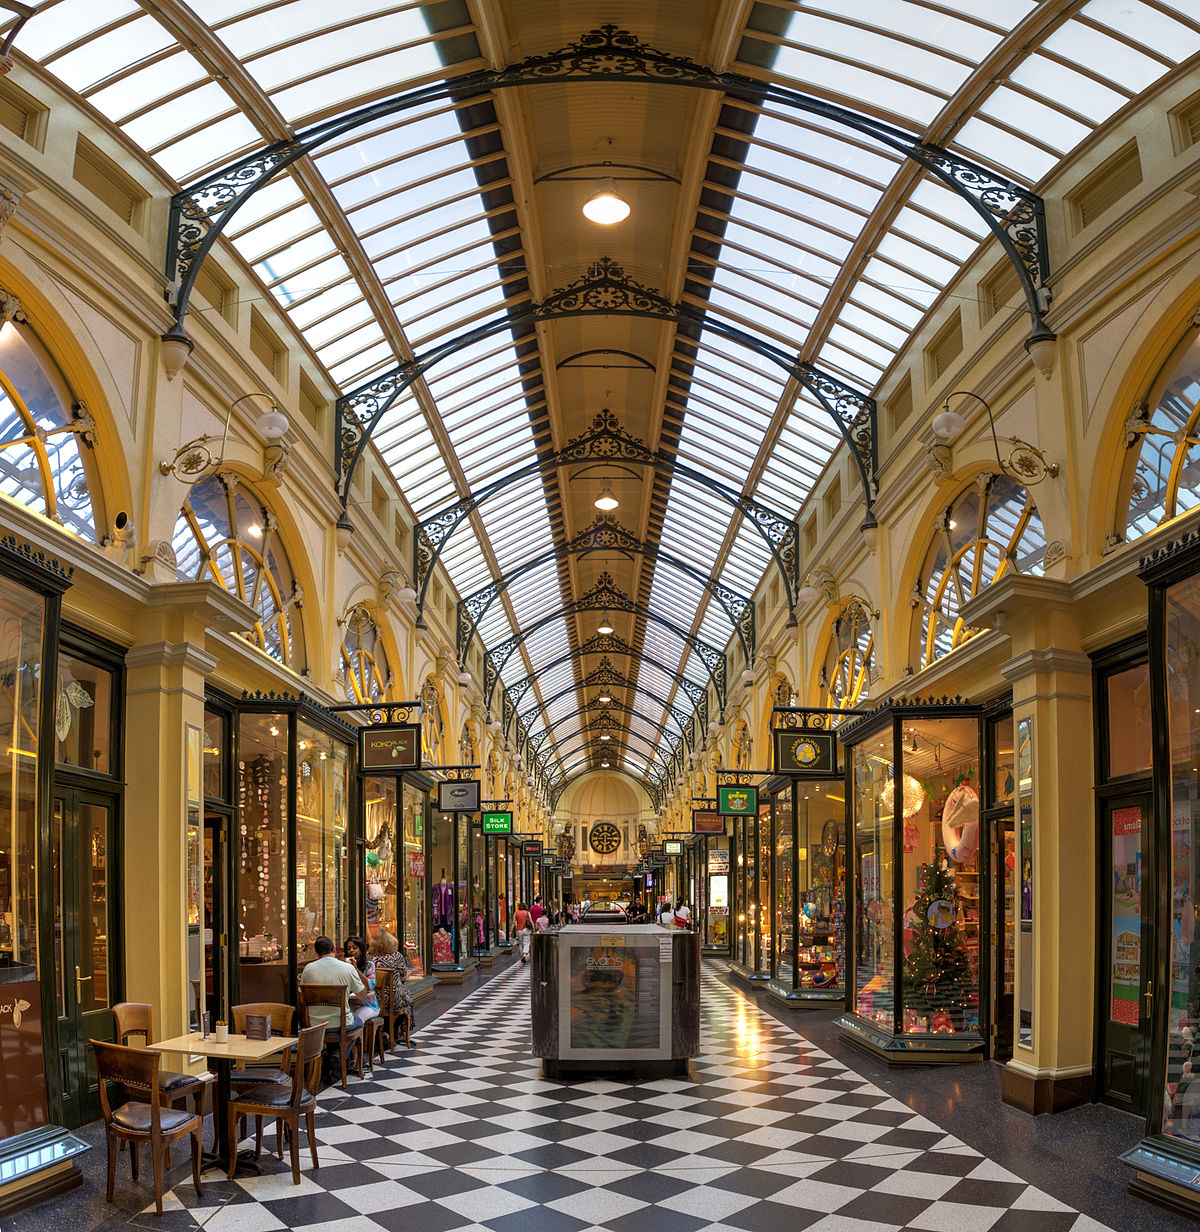 royal arcade melbourne wikipedia. Black Bedroom Furniture Sets. Home Design Ideas